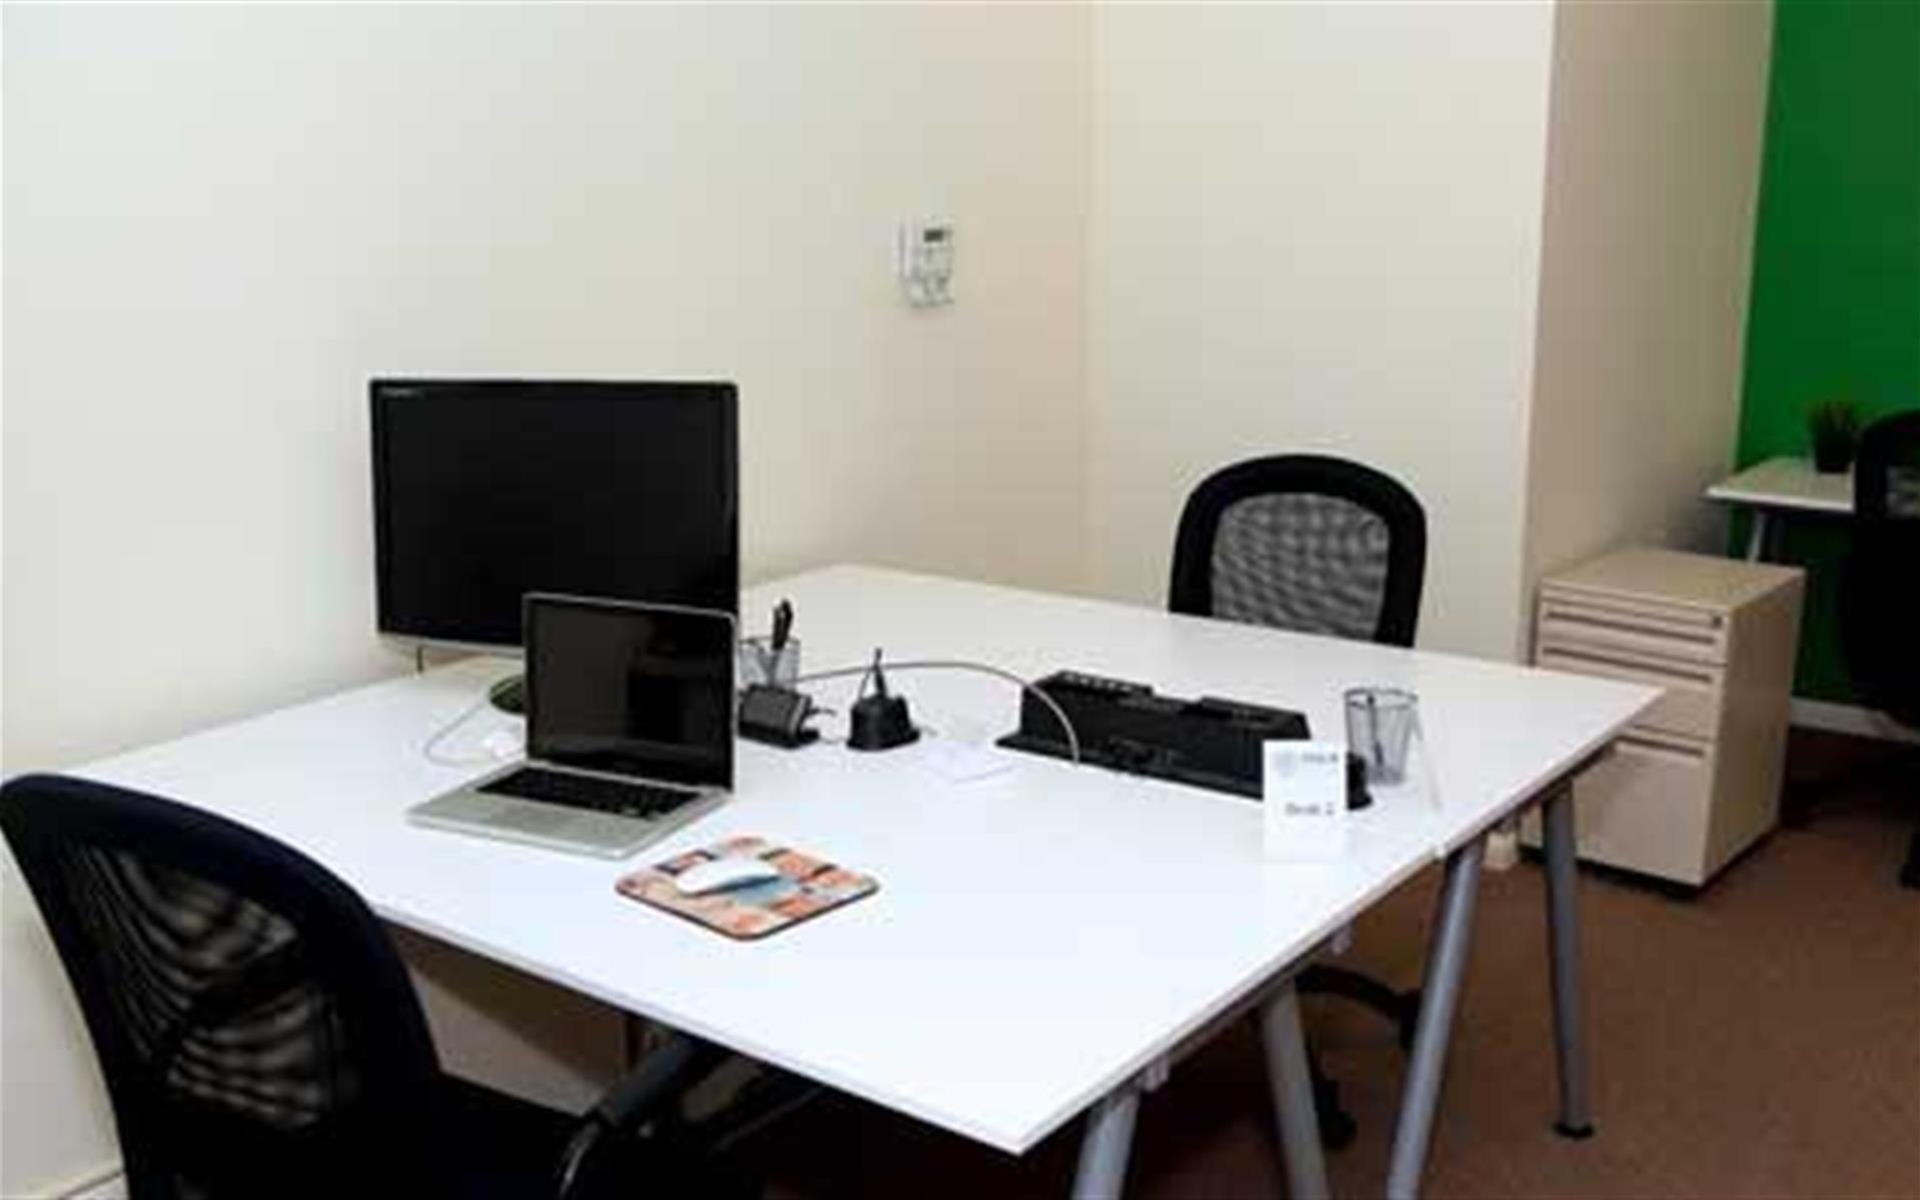 Realm Workspace - Dedicated Desk